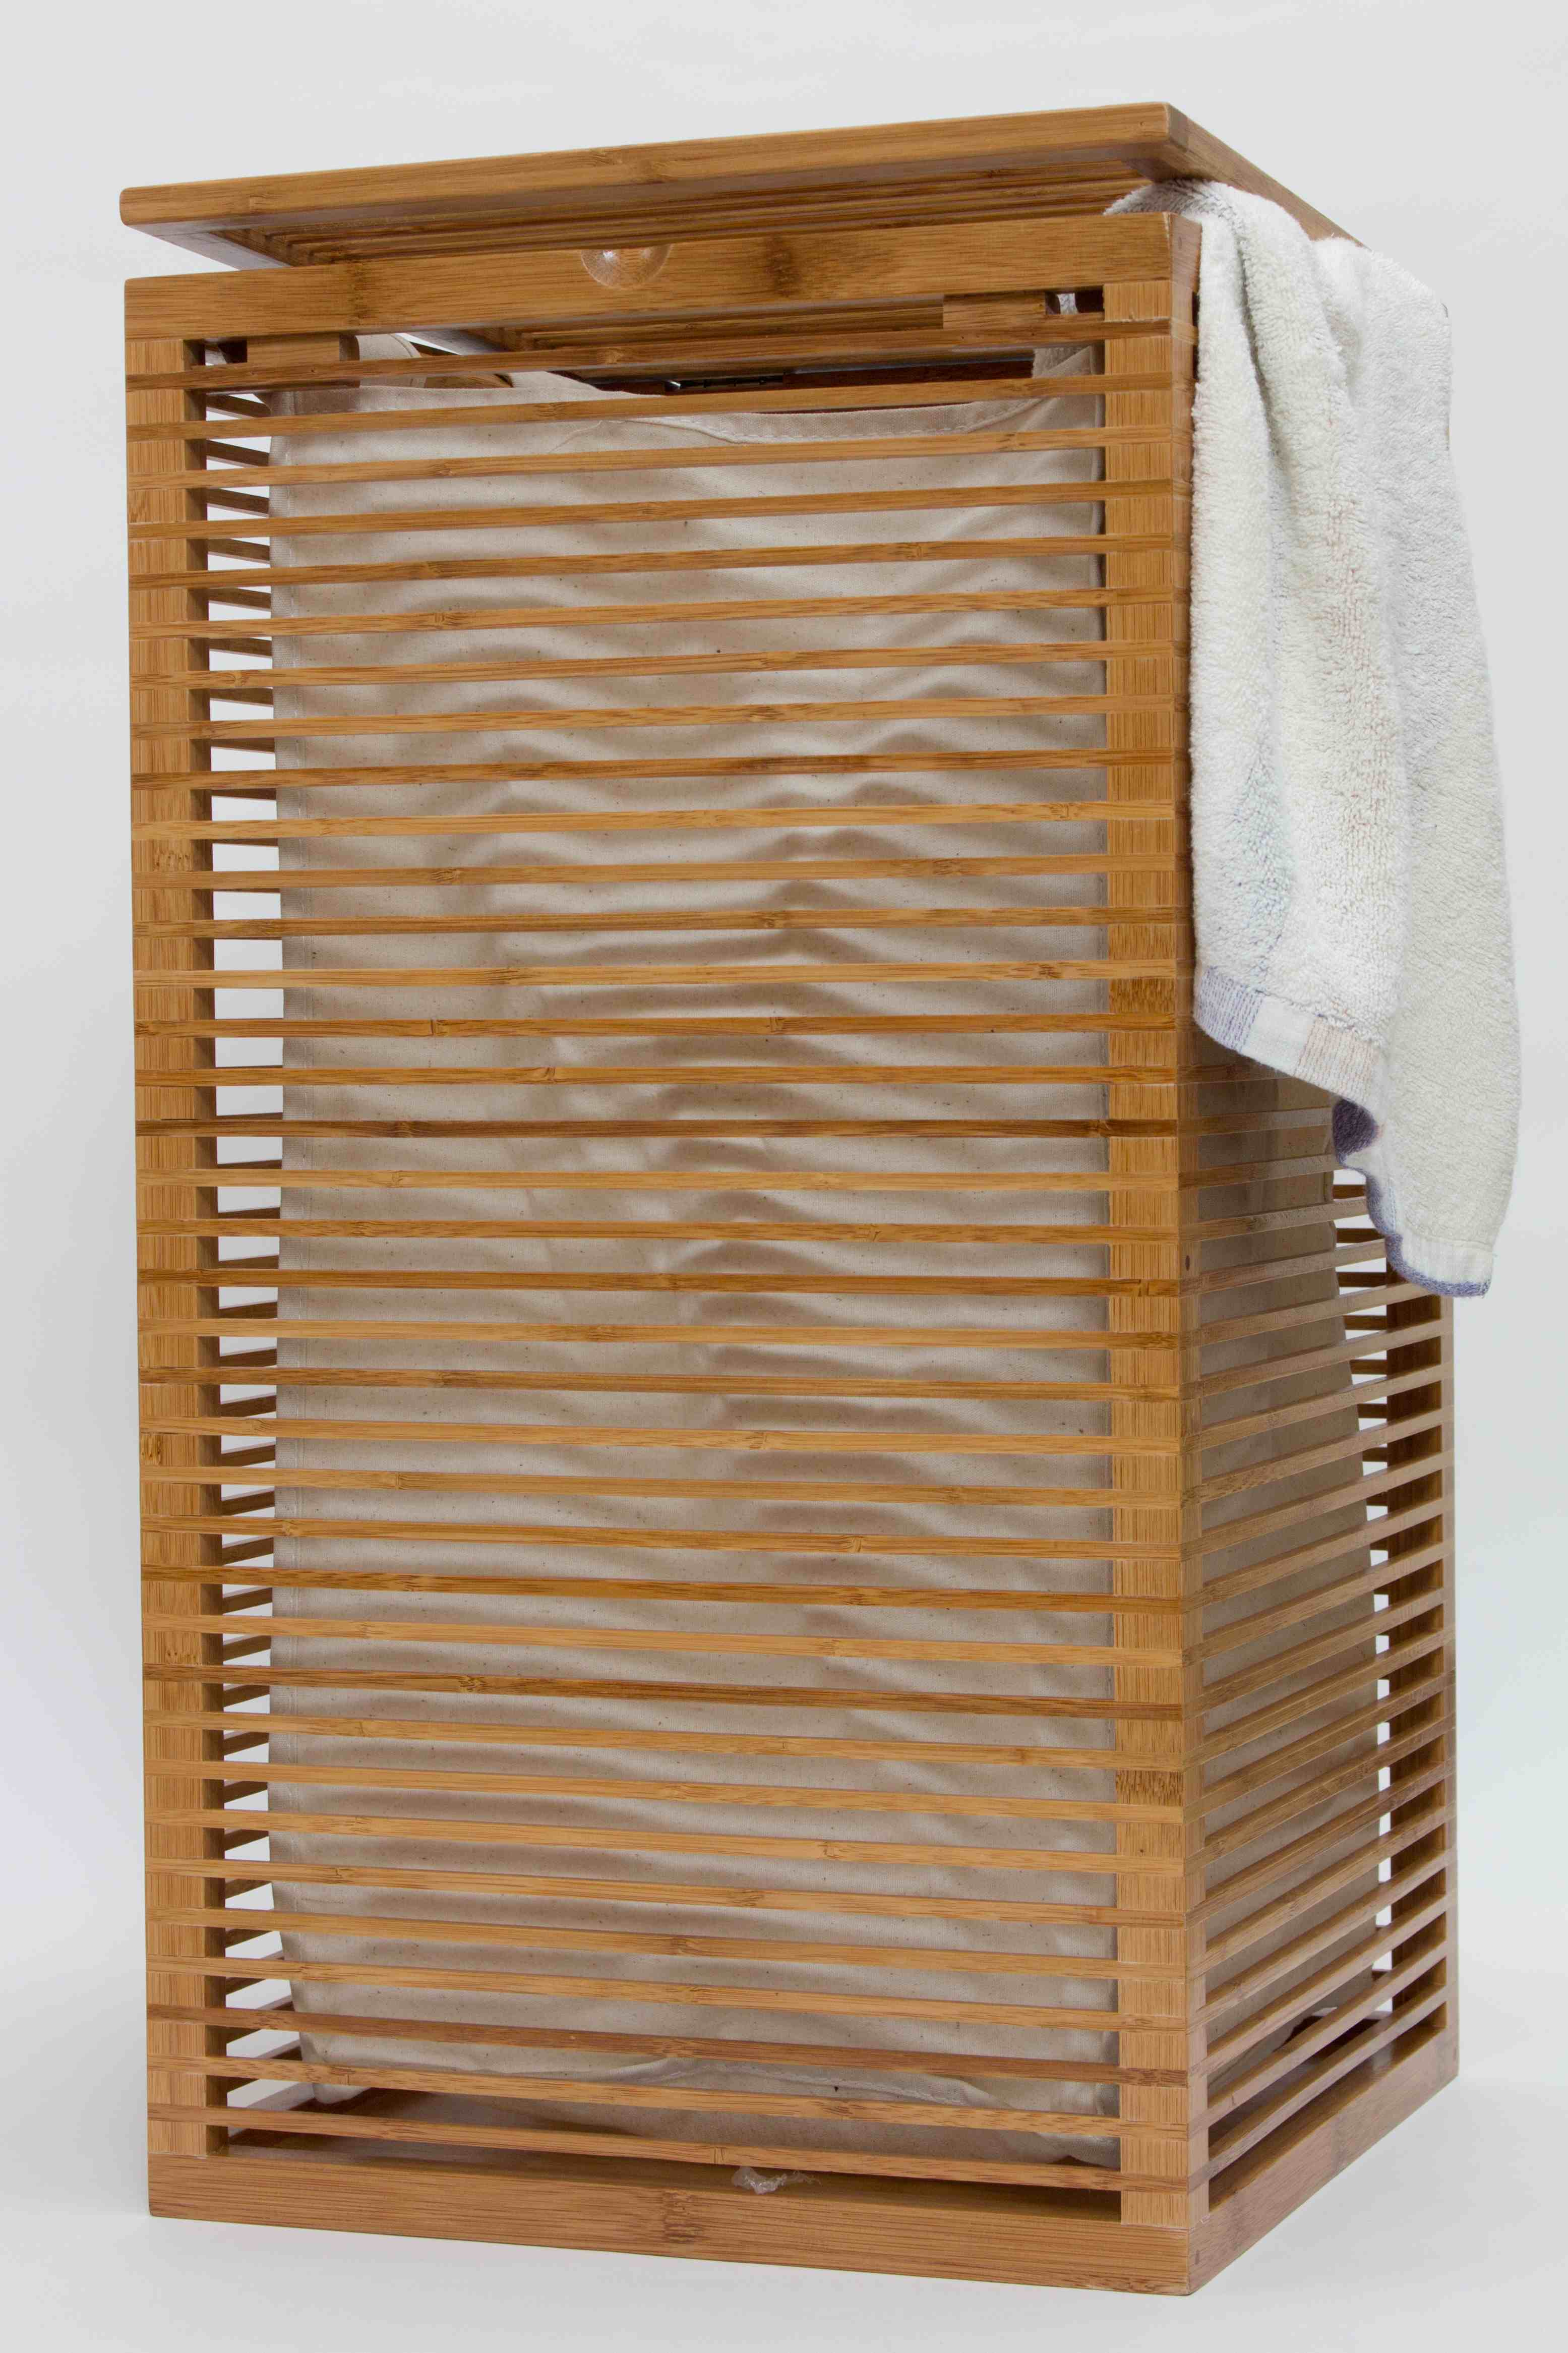 Slim open slats design bamboo laundry hamper for the apartment and loft dwellers in this - Bamboo clothes hamper ...